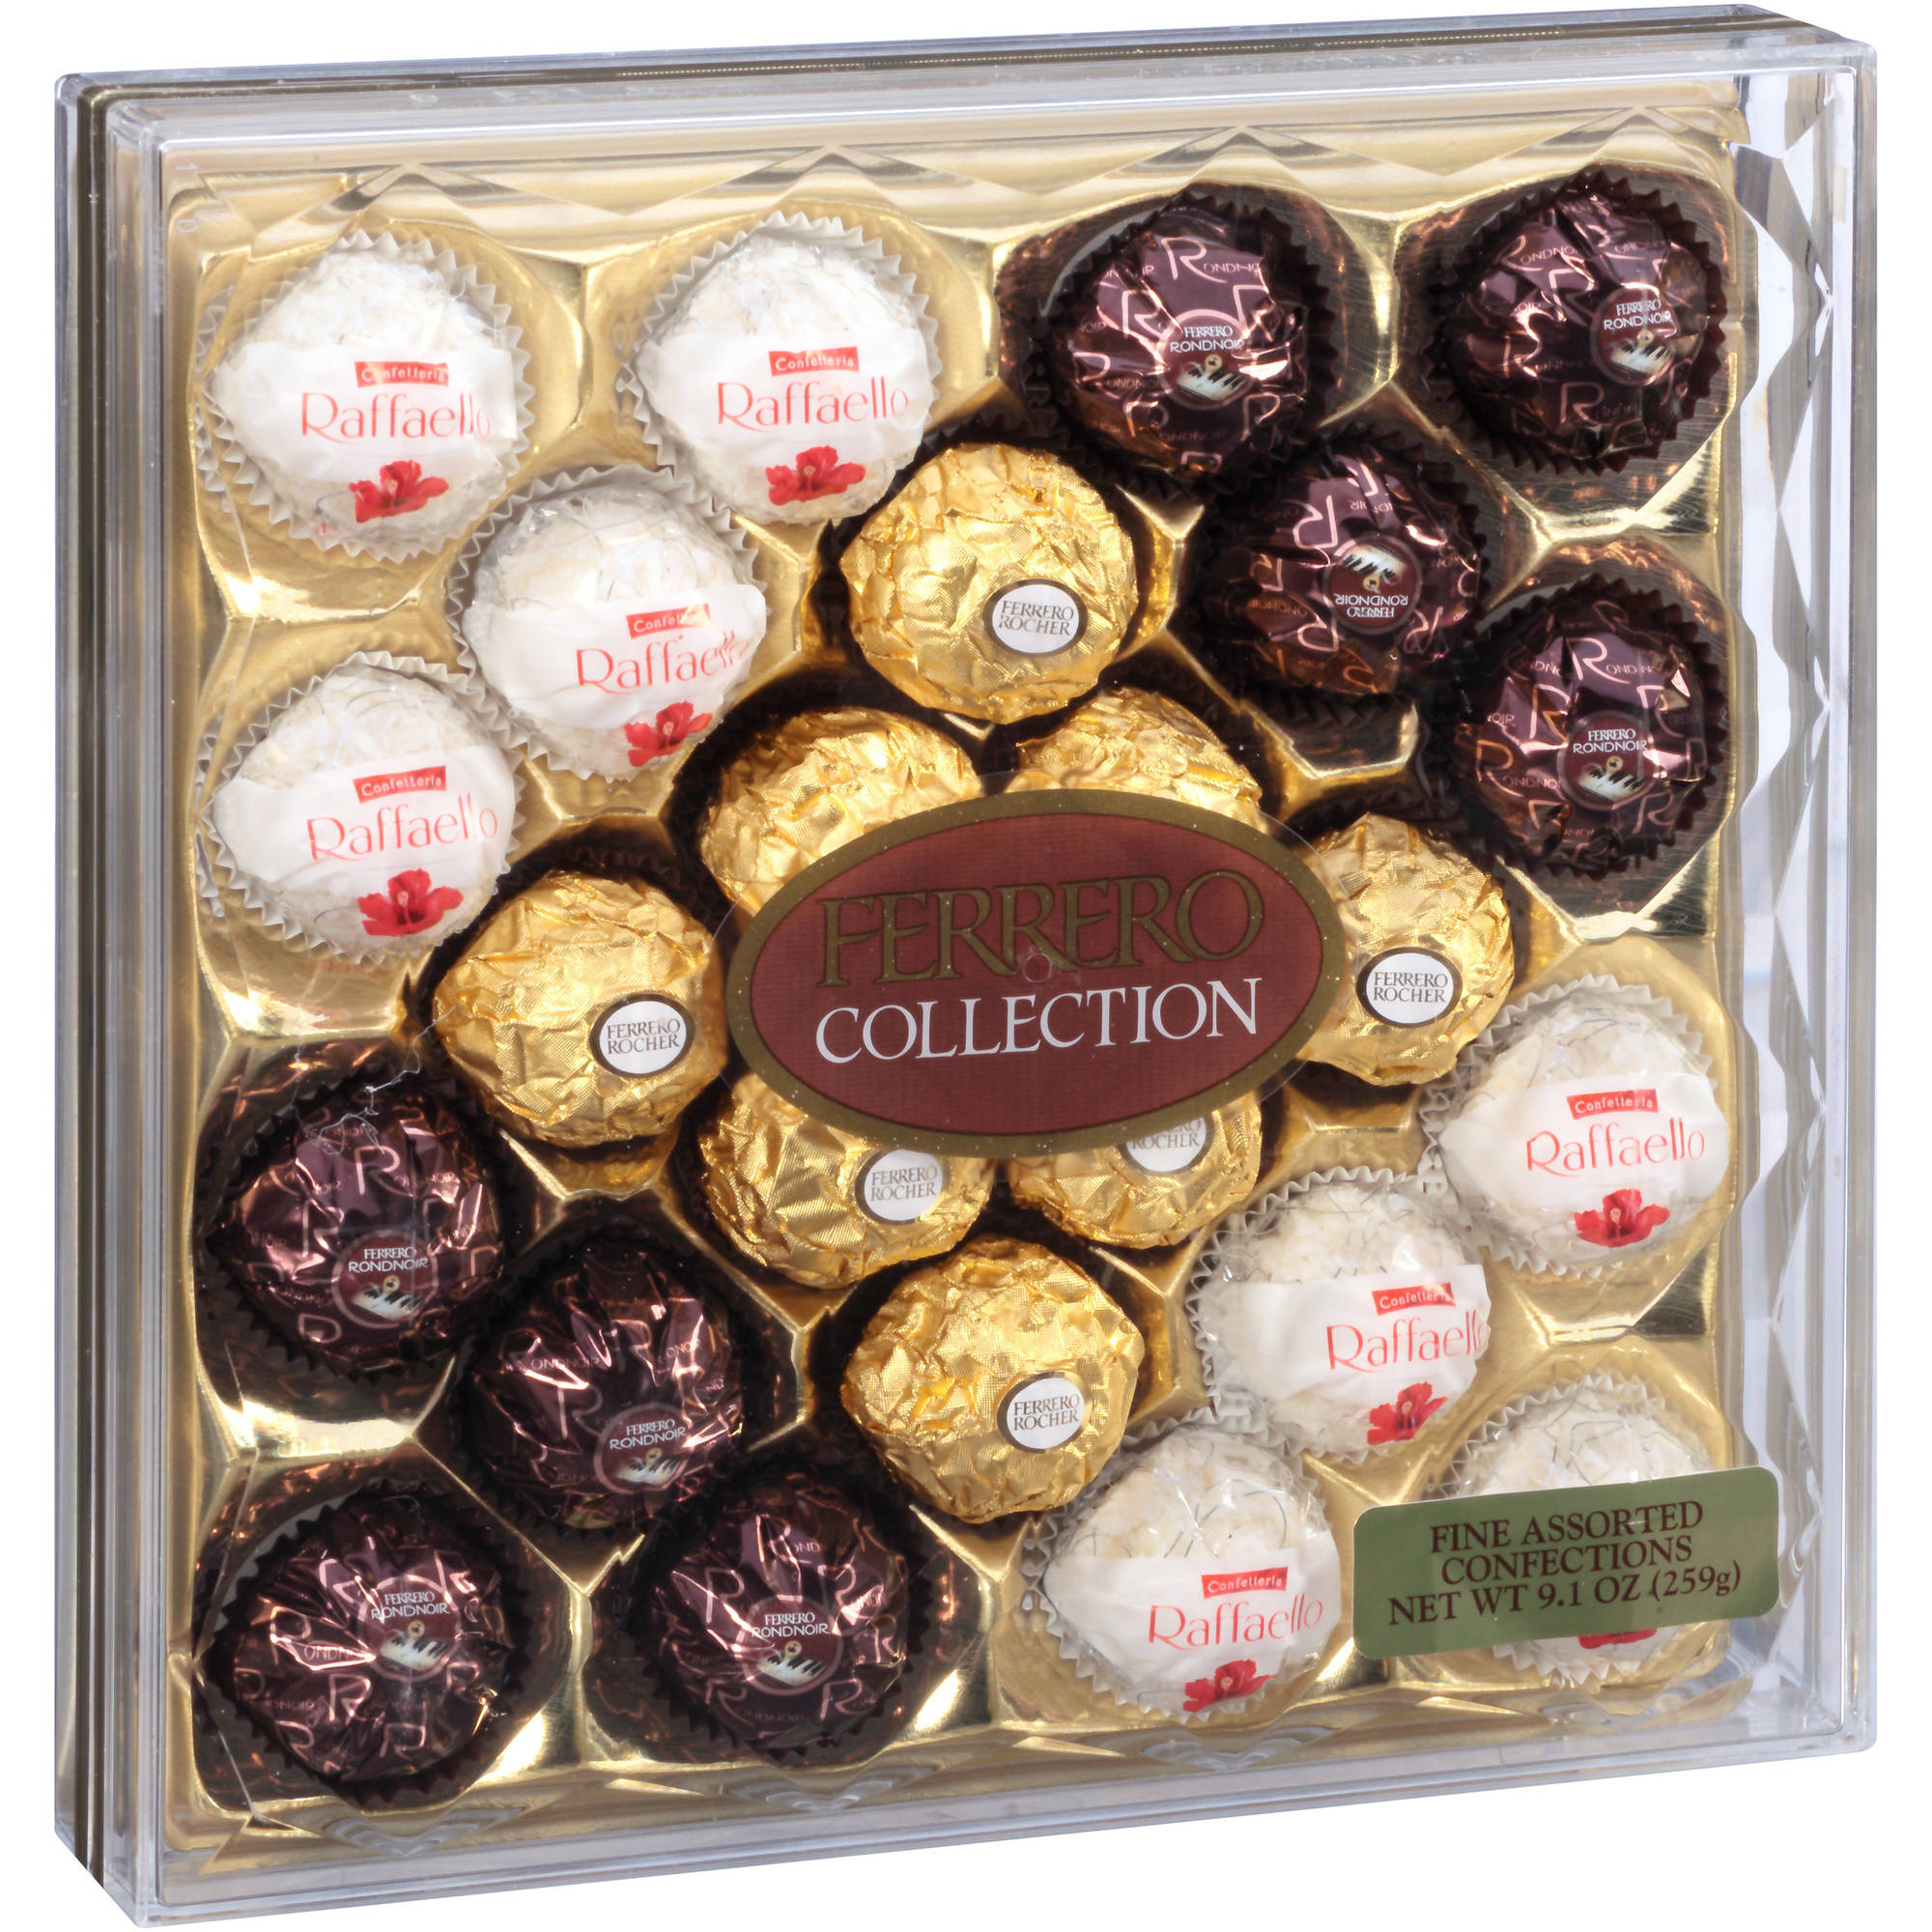 Ferrero Collection Fine Assorted Confections, 9.1 oz